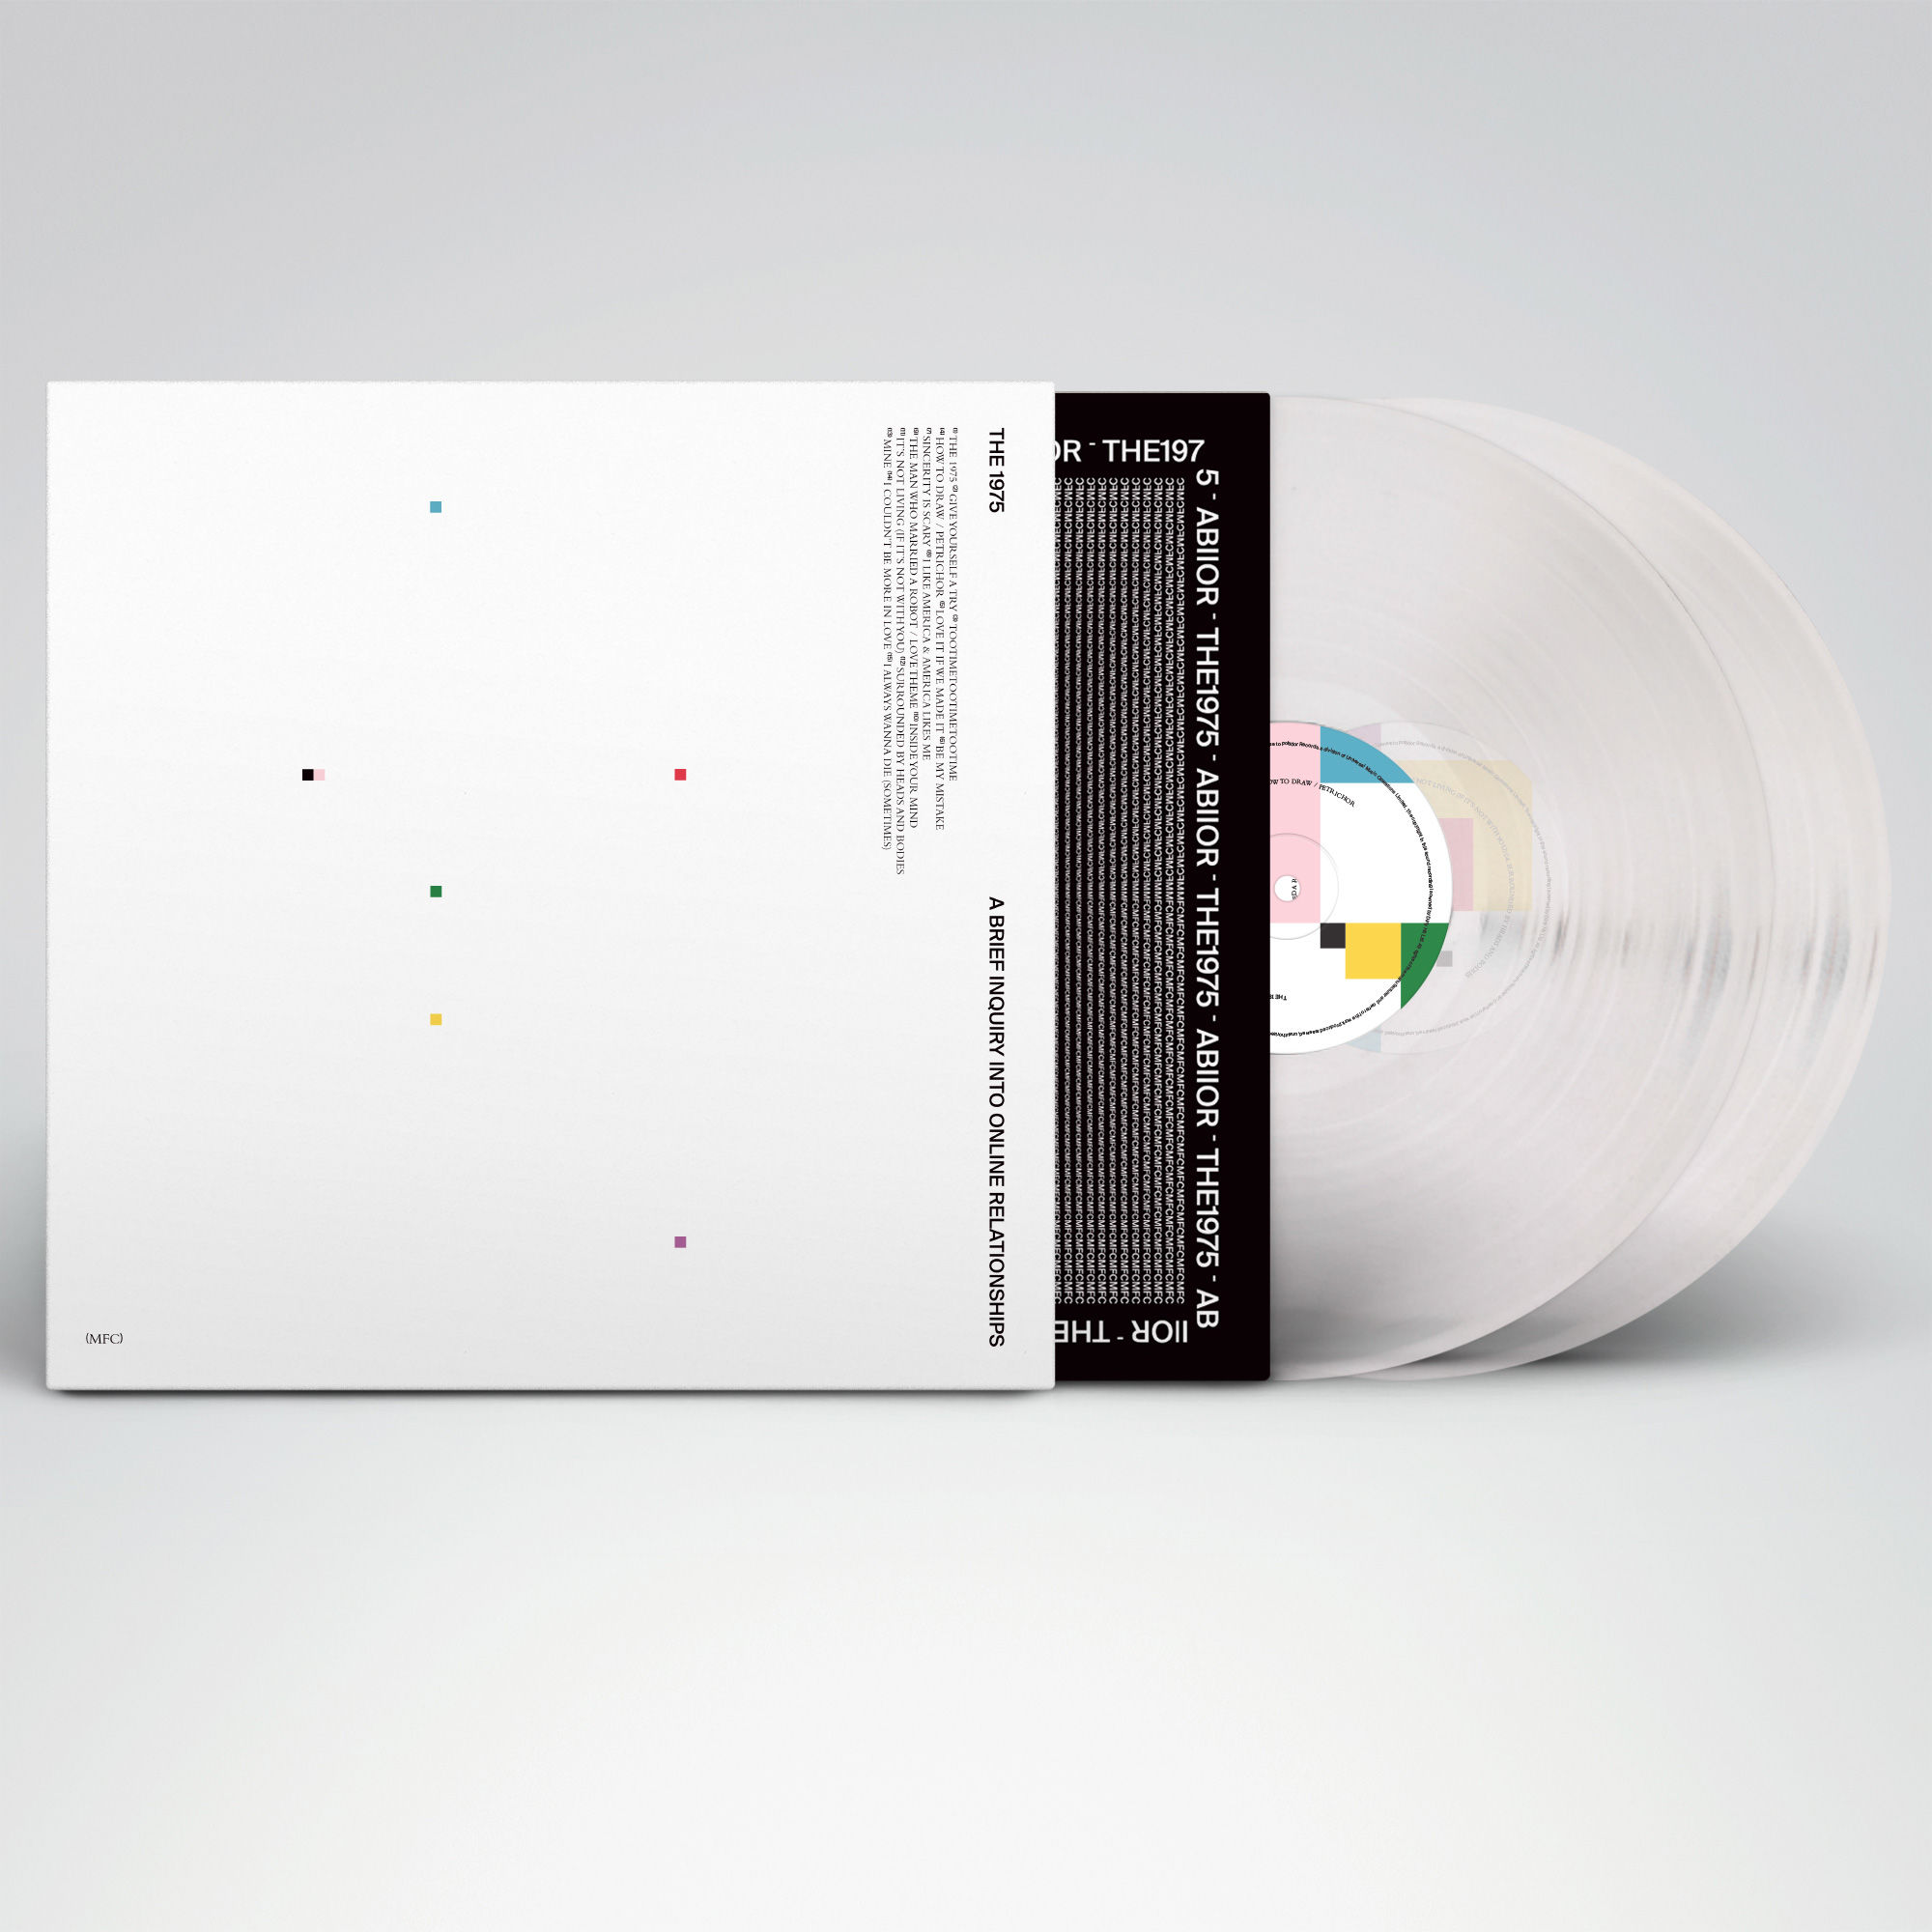 The 1975: A Brief Inquiry Into Online Relationships Vinyl – 180g Double Gatefold Clear Vinyl (Store Exclusive)